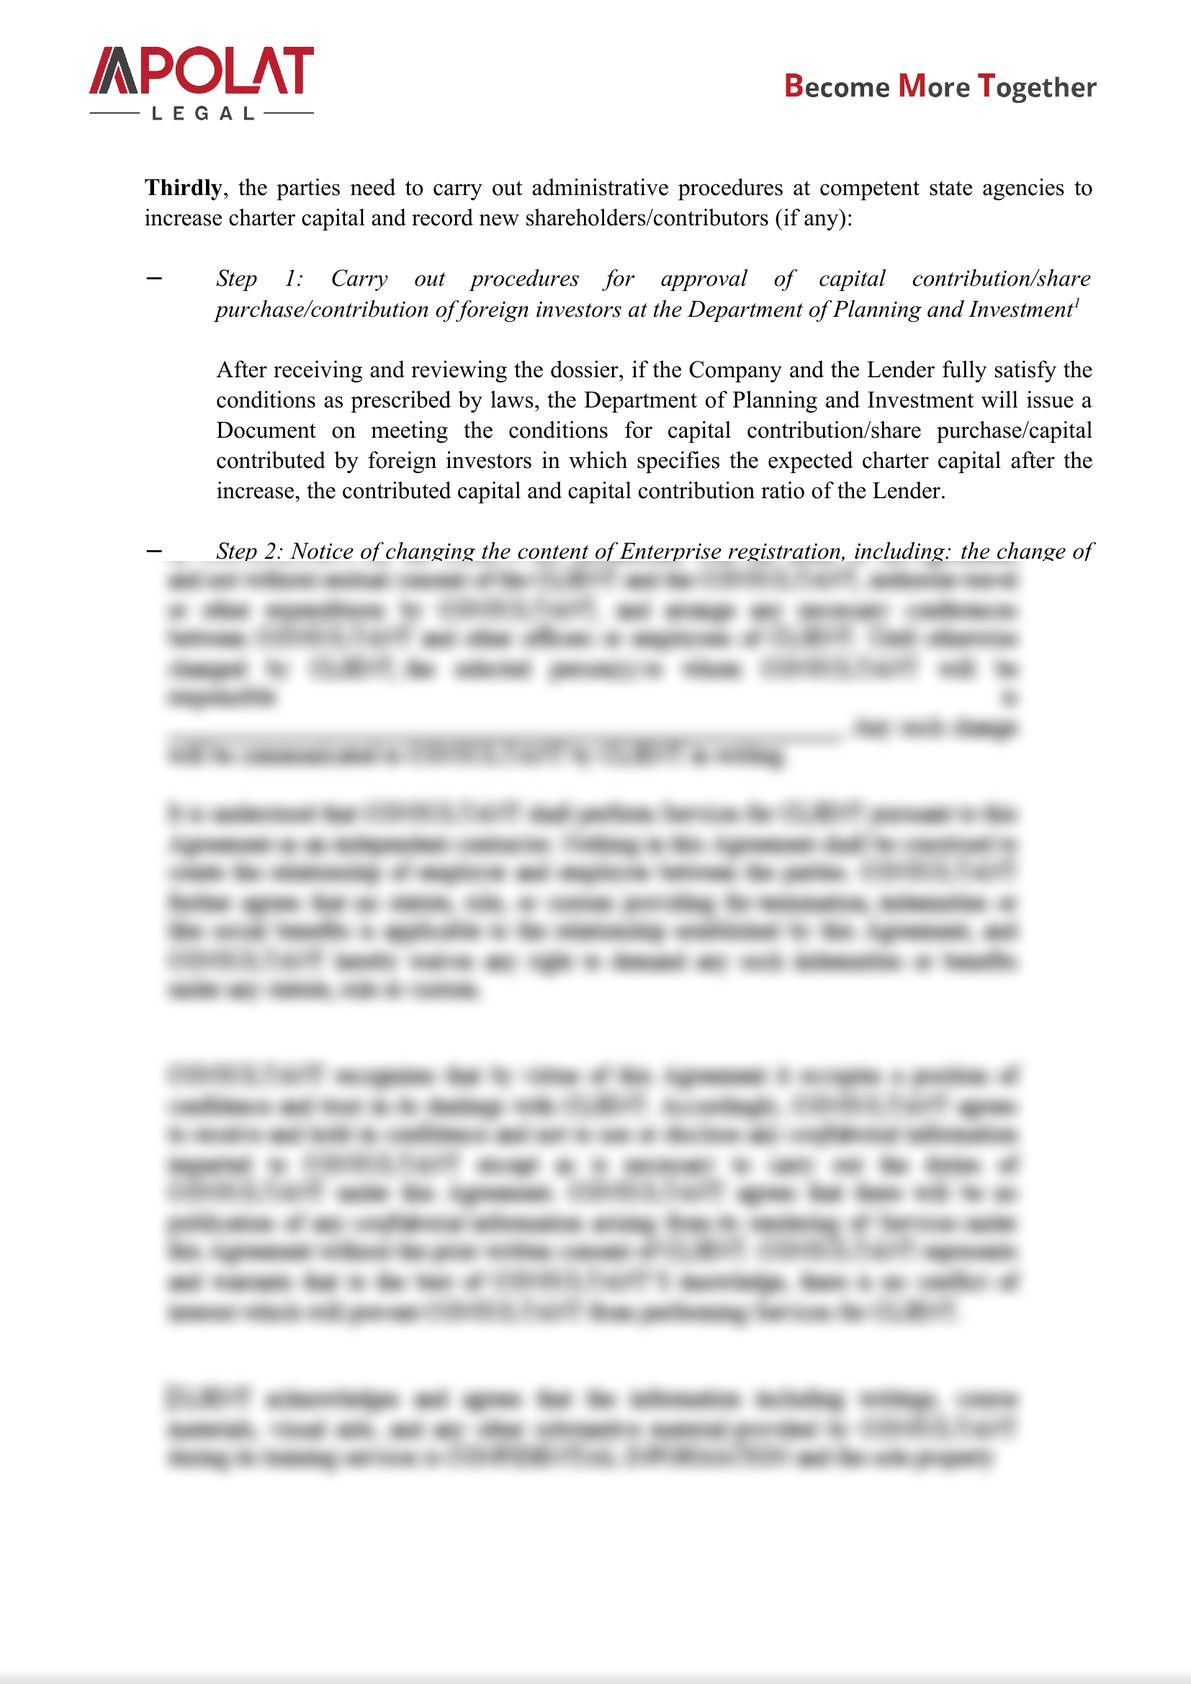 Legal Issues To Be Noted When Converting Loans Into Contributed Capital-2